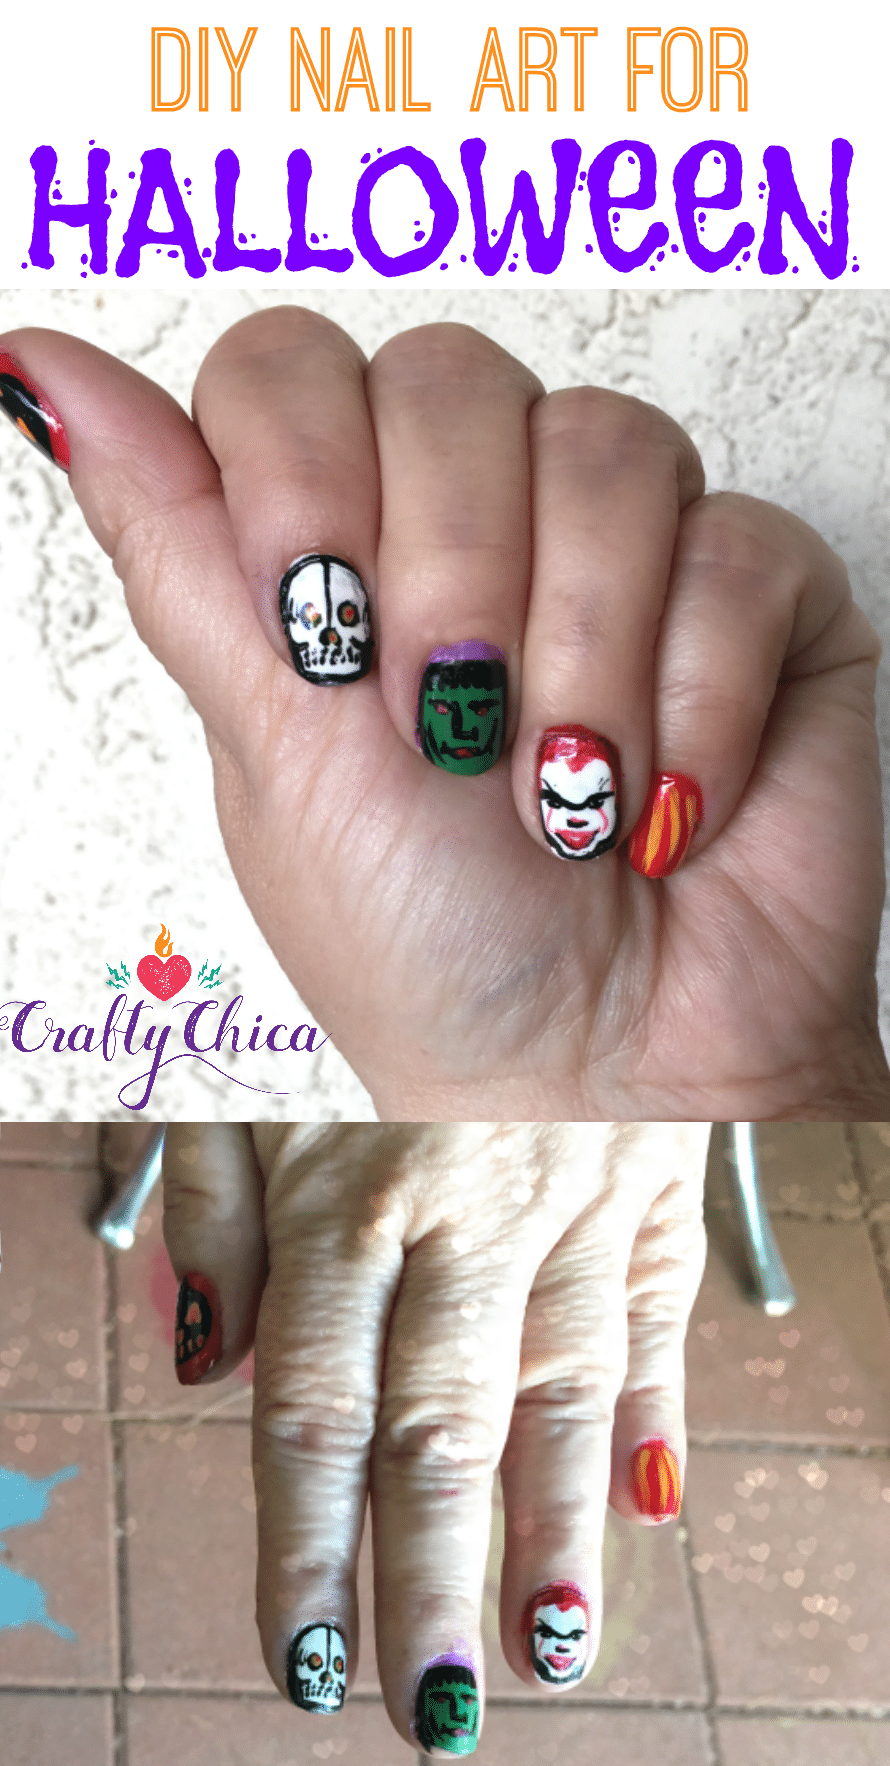 Halloween nail art - Pennywise (and More) Halloween Nail Art DIY - The Crafty Chica